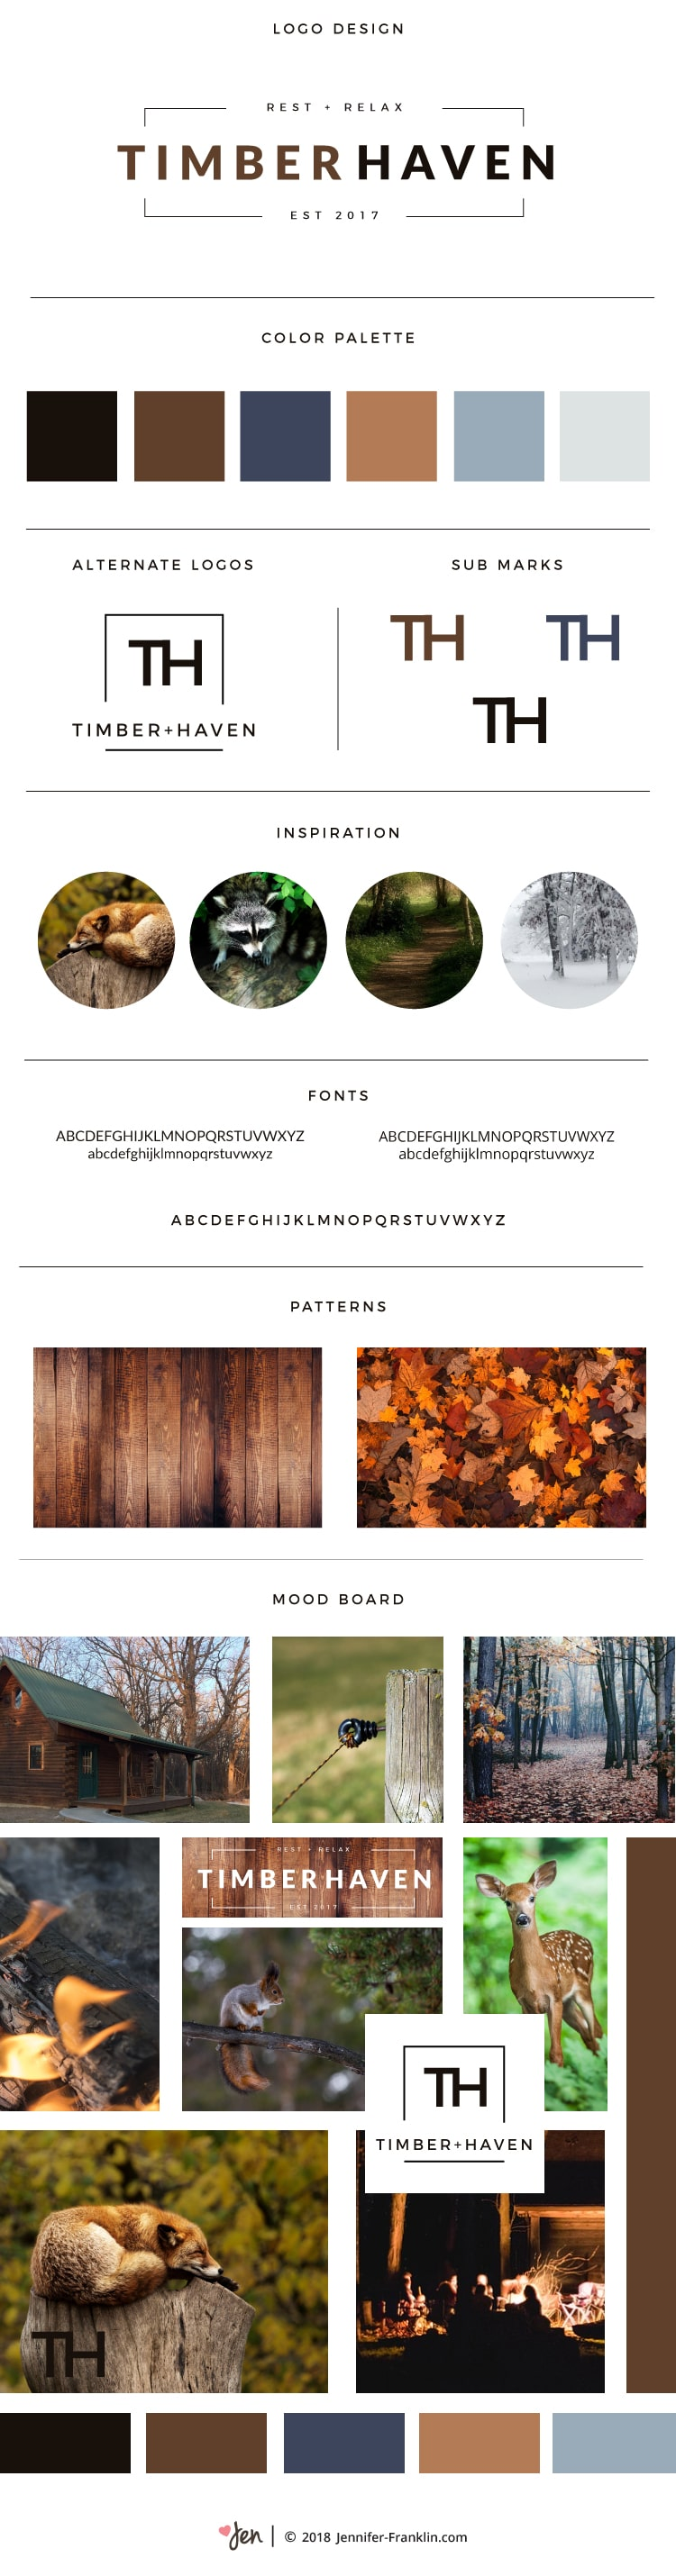 timber-haven-brand-board-sample-01